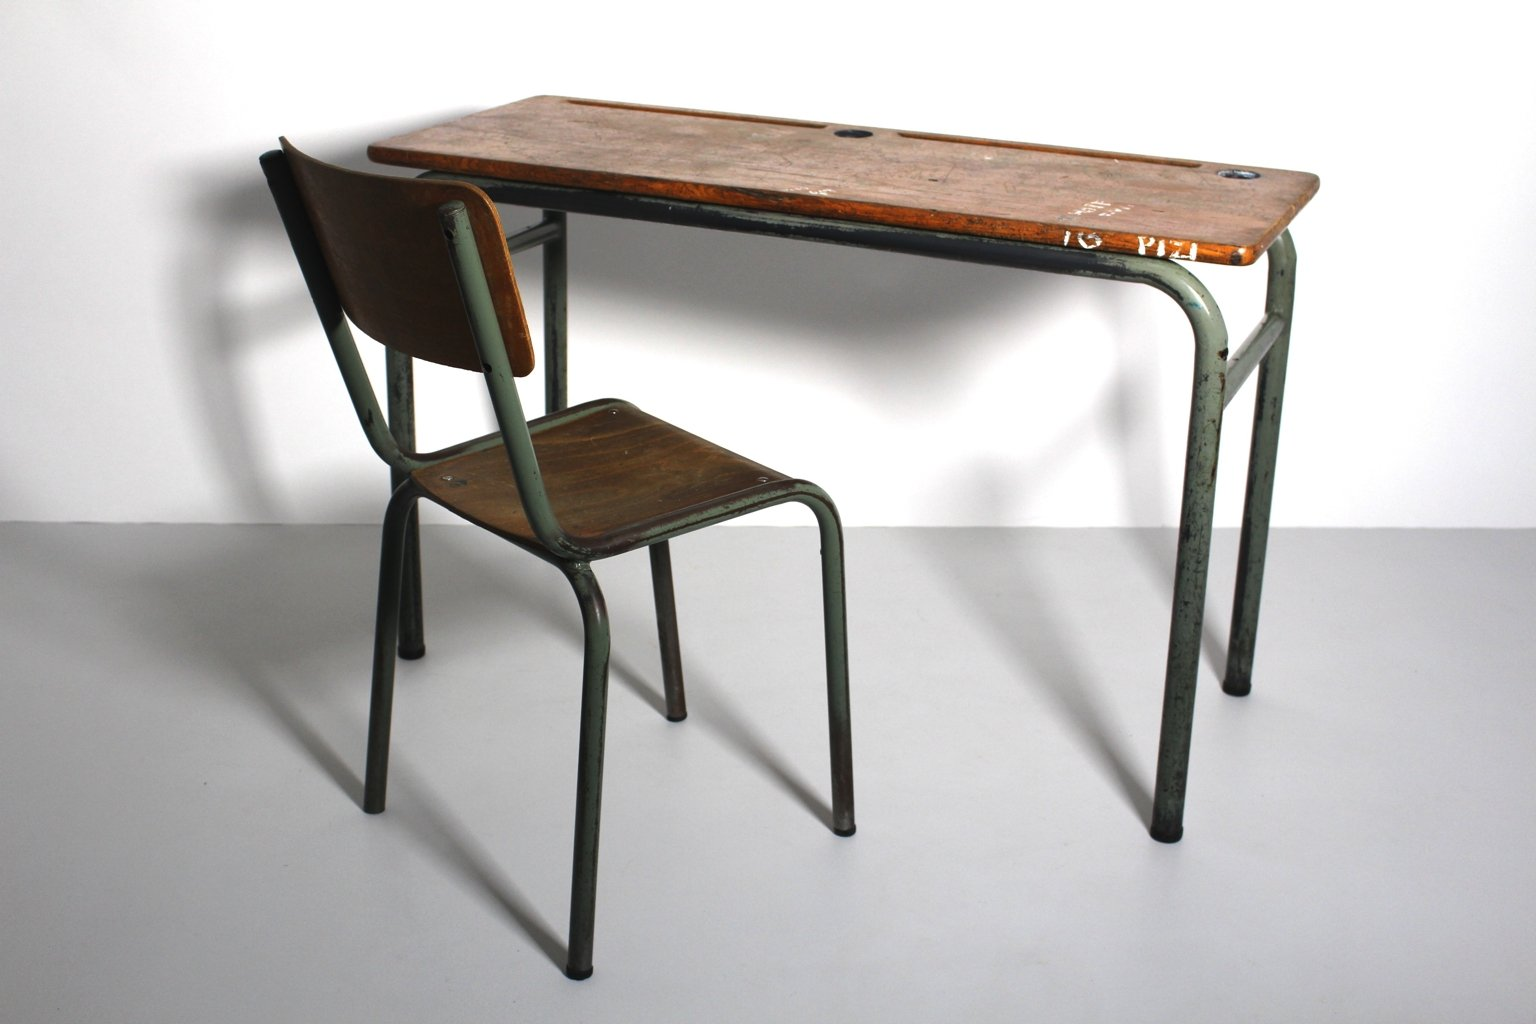 Vintage Industrial Style Vintage Industrial Style Desk And Chair 1940s Set Of 2